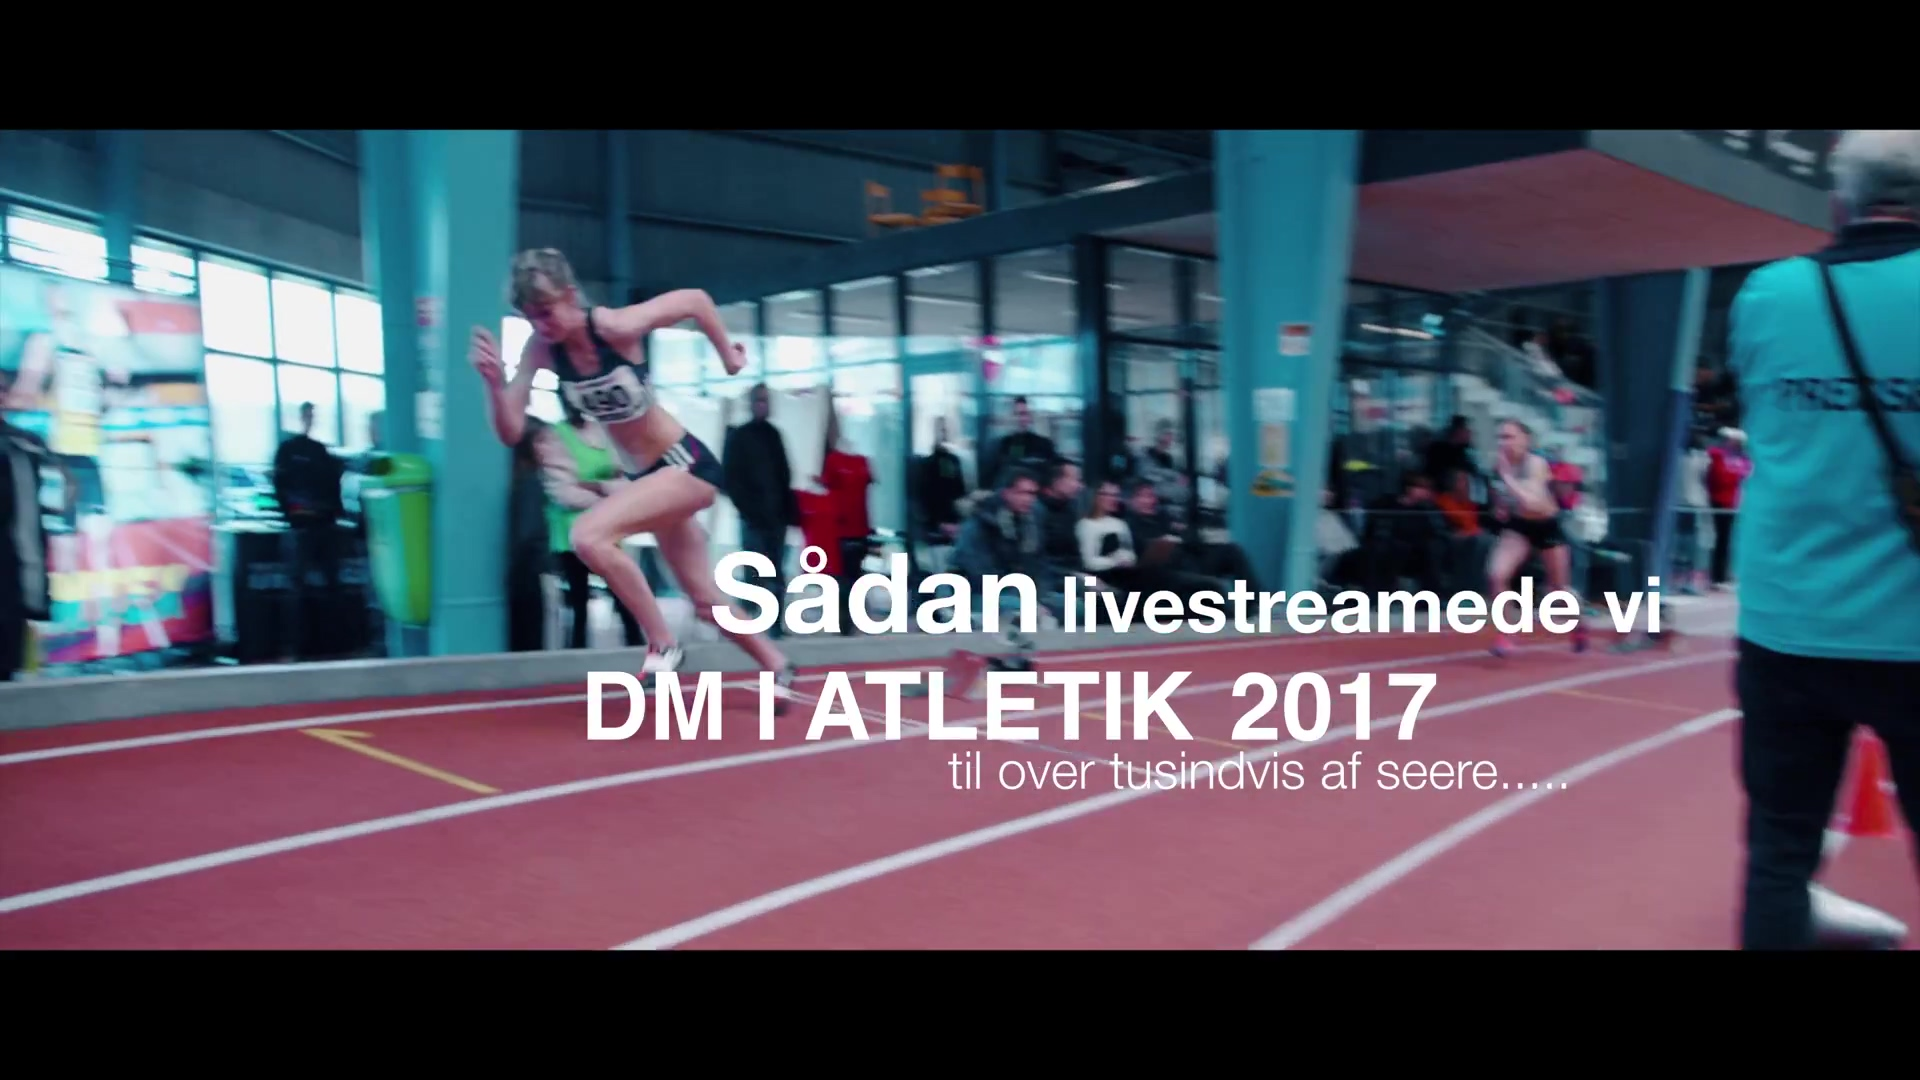 Danmarksrekord i livestreaming - behind the scenes ved DM Atletik 2017